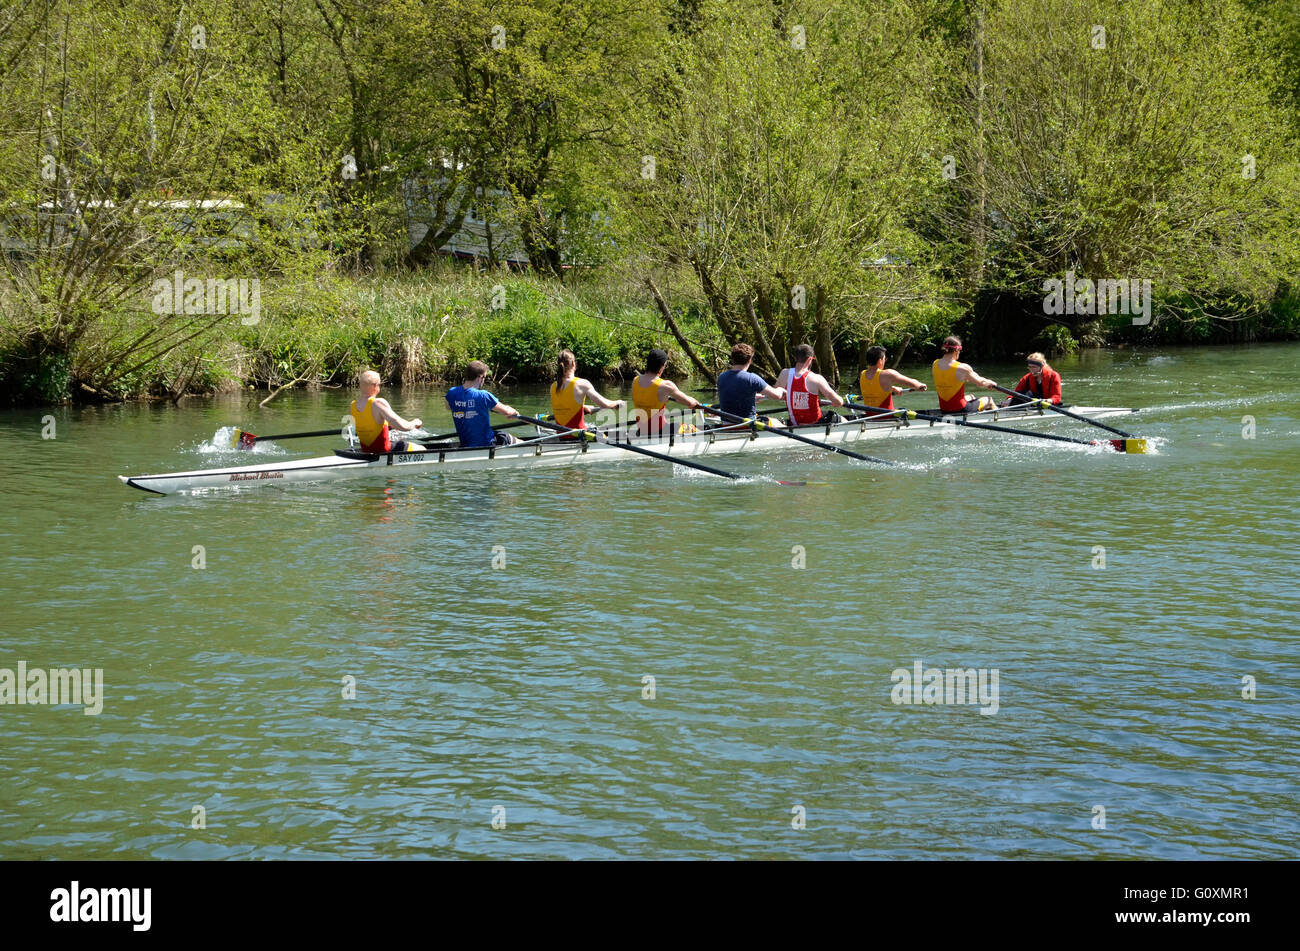 A coxed eight of Oxford University rowers on the River Thames (Isis) at Oxford, England. - Stock Image